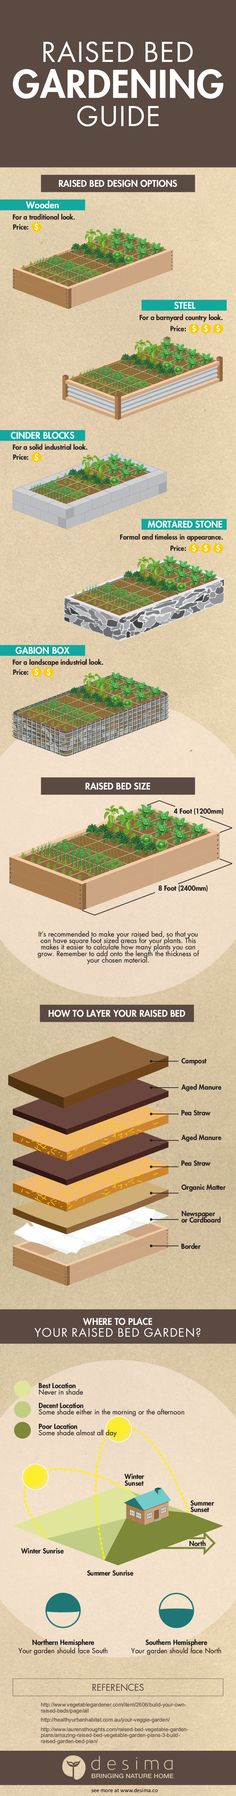 Use this guide to help you build the perfect raised bed garden for your  home. Raised bed gardening makes it easier to control weeds, pest control,  planting and harvesting. It's important to choose the best materials for  your budget. Raised beds also make it easier on your back. Using a quality  soil mix as outlined below will help you increase yeilds and quality of  your harvest.  Raised Bed Gardening Guide Infographic  Remember if you use this infographic on your website, you must have a…